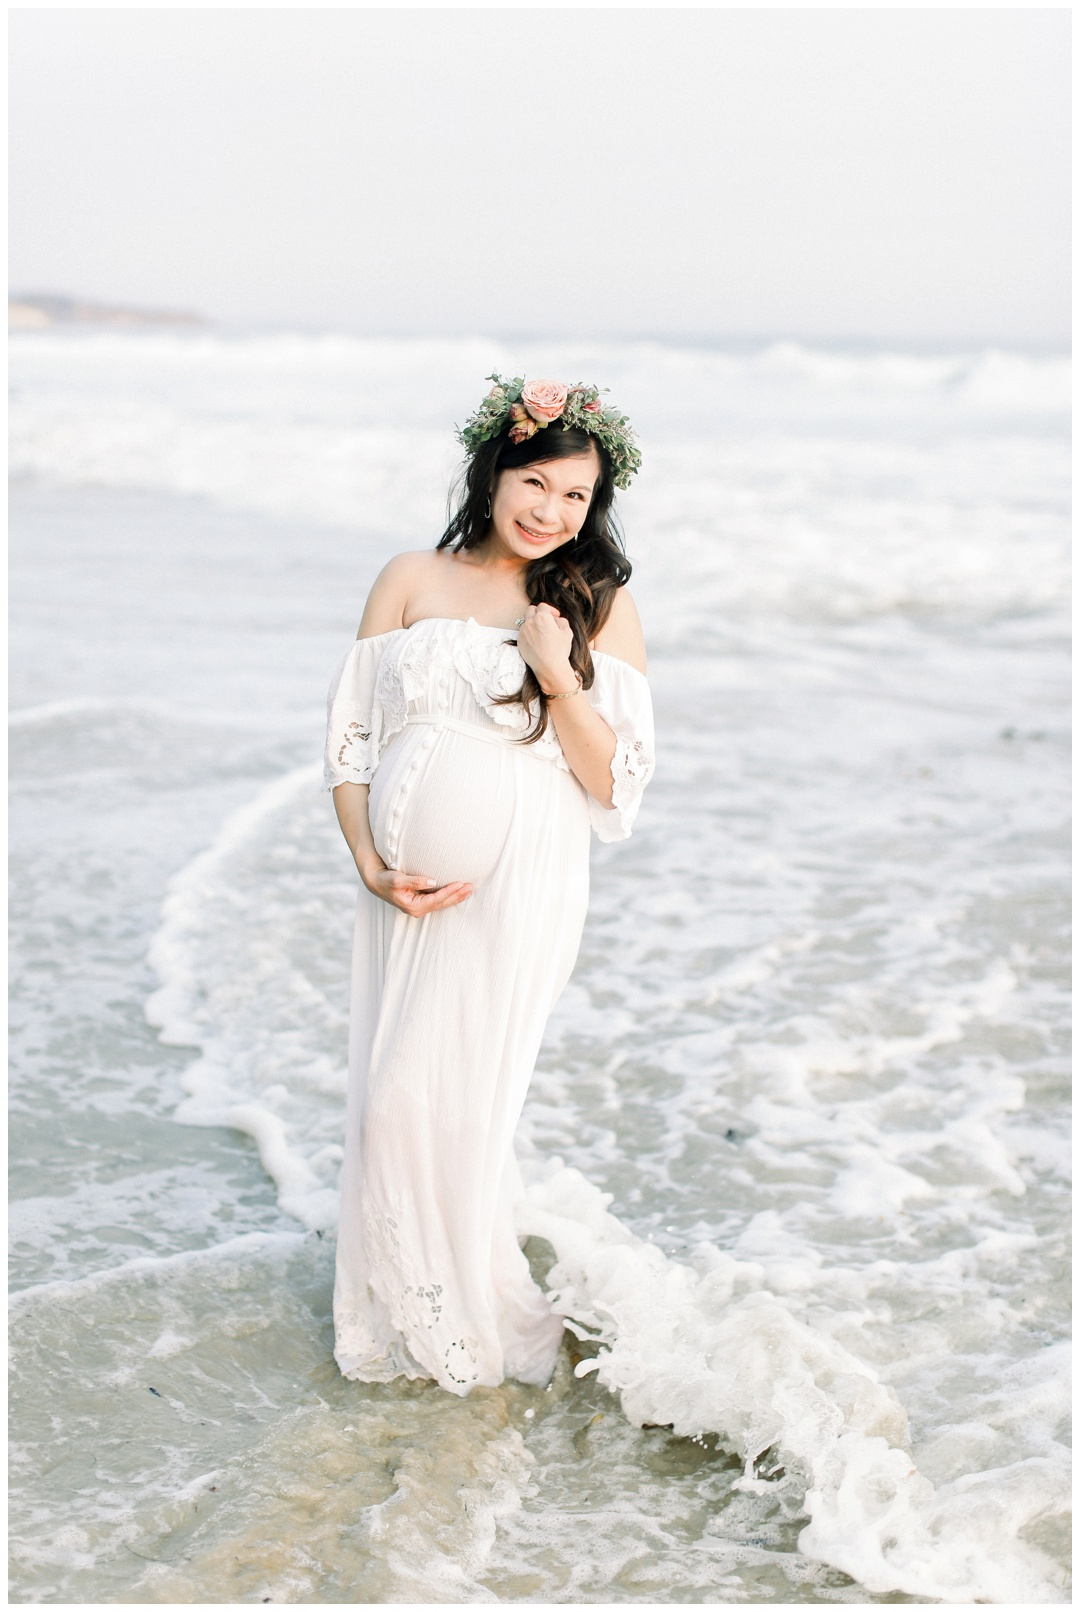 Newport_Beach_Maternity_Photographer_Newport_Beach_Newborn_Photography_Orange_County_Photography_Cori_Kleckner_Photography_Orange_County_Beach_baby_bump_Photography_Kelly_Chao__1898.jpg